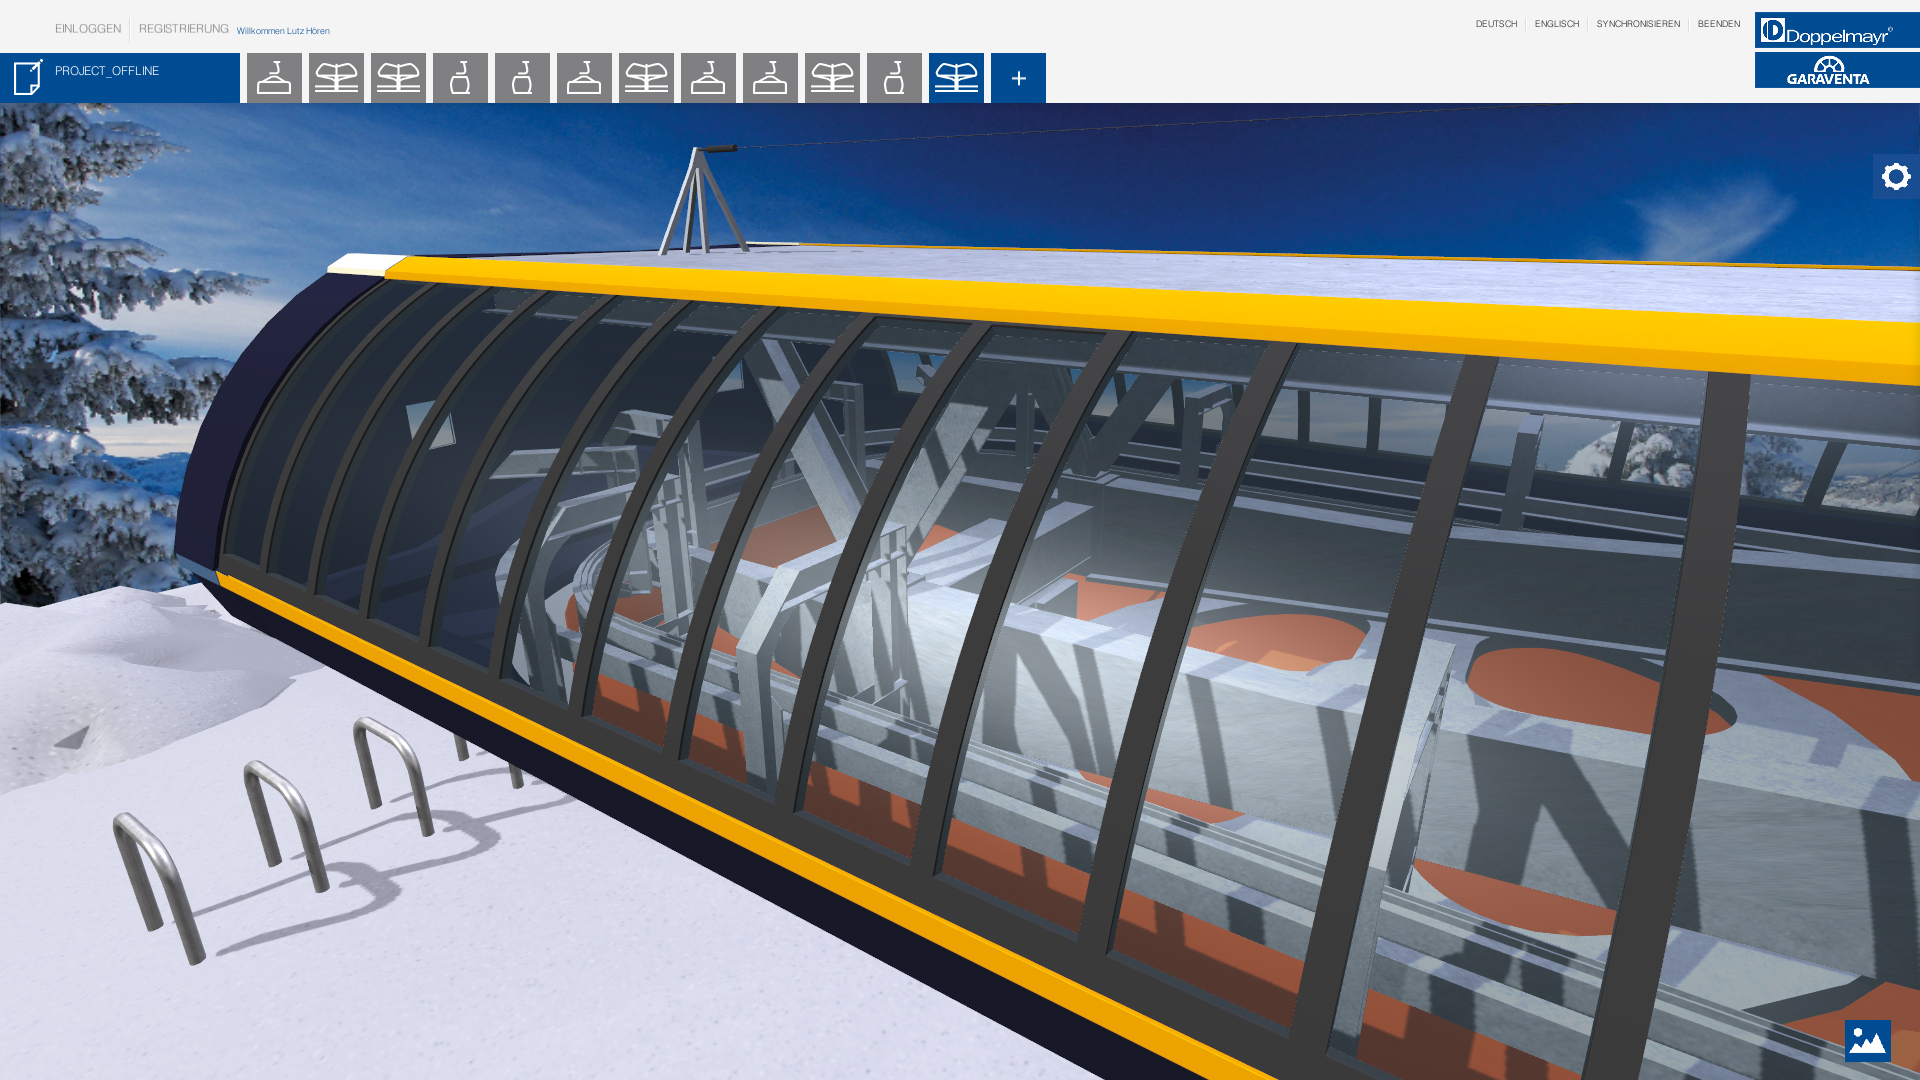 doppelmayr unity ropeway configurator station zoom